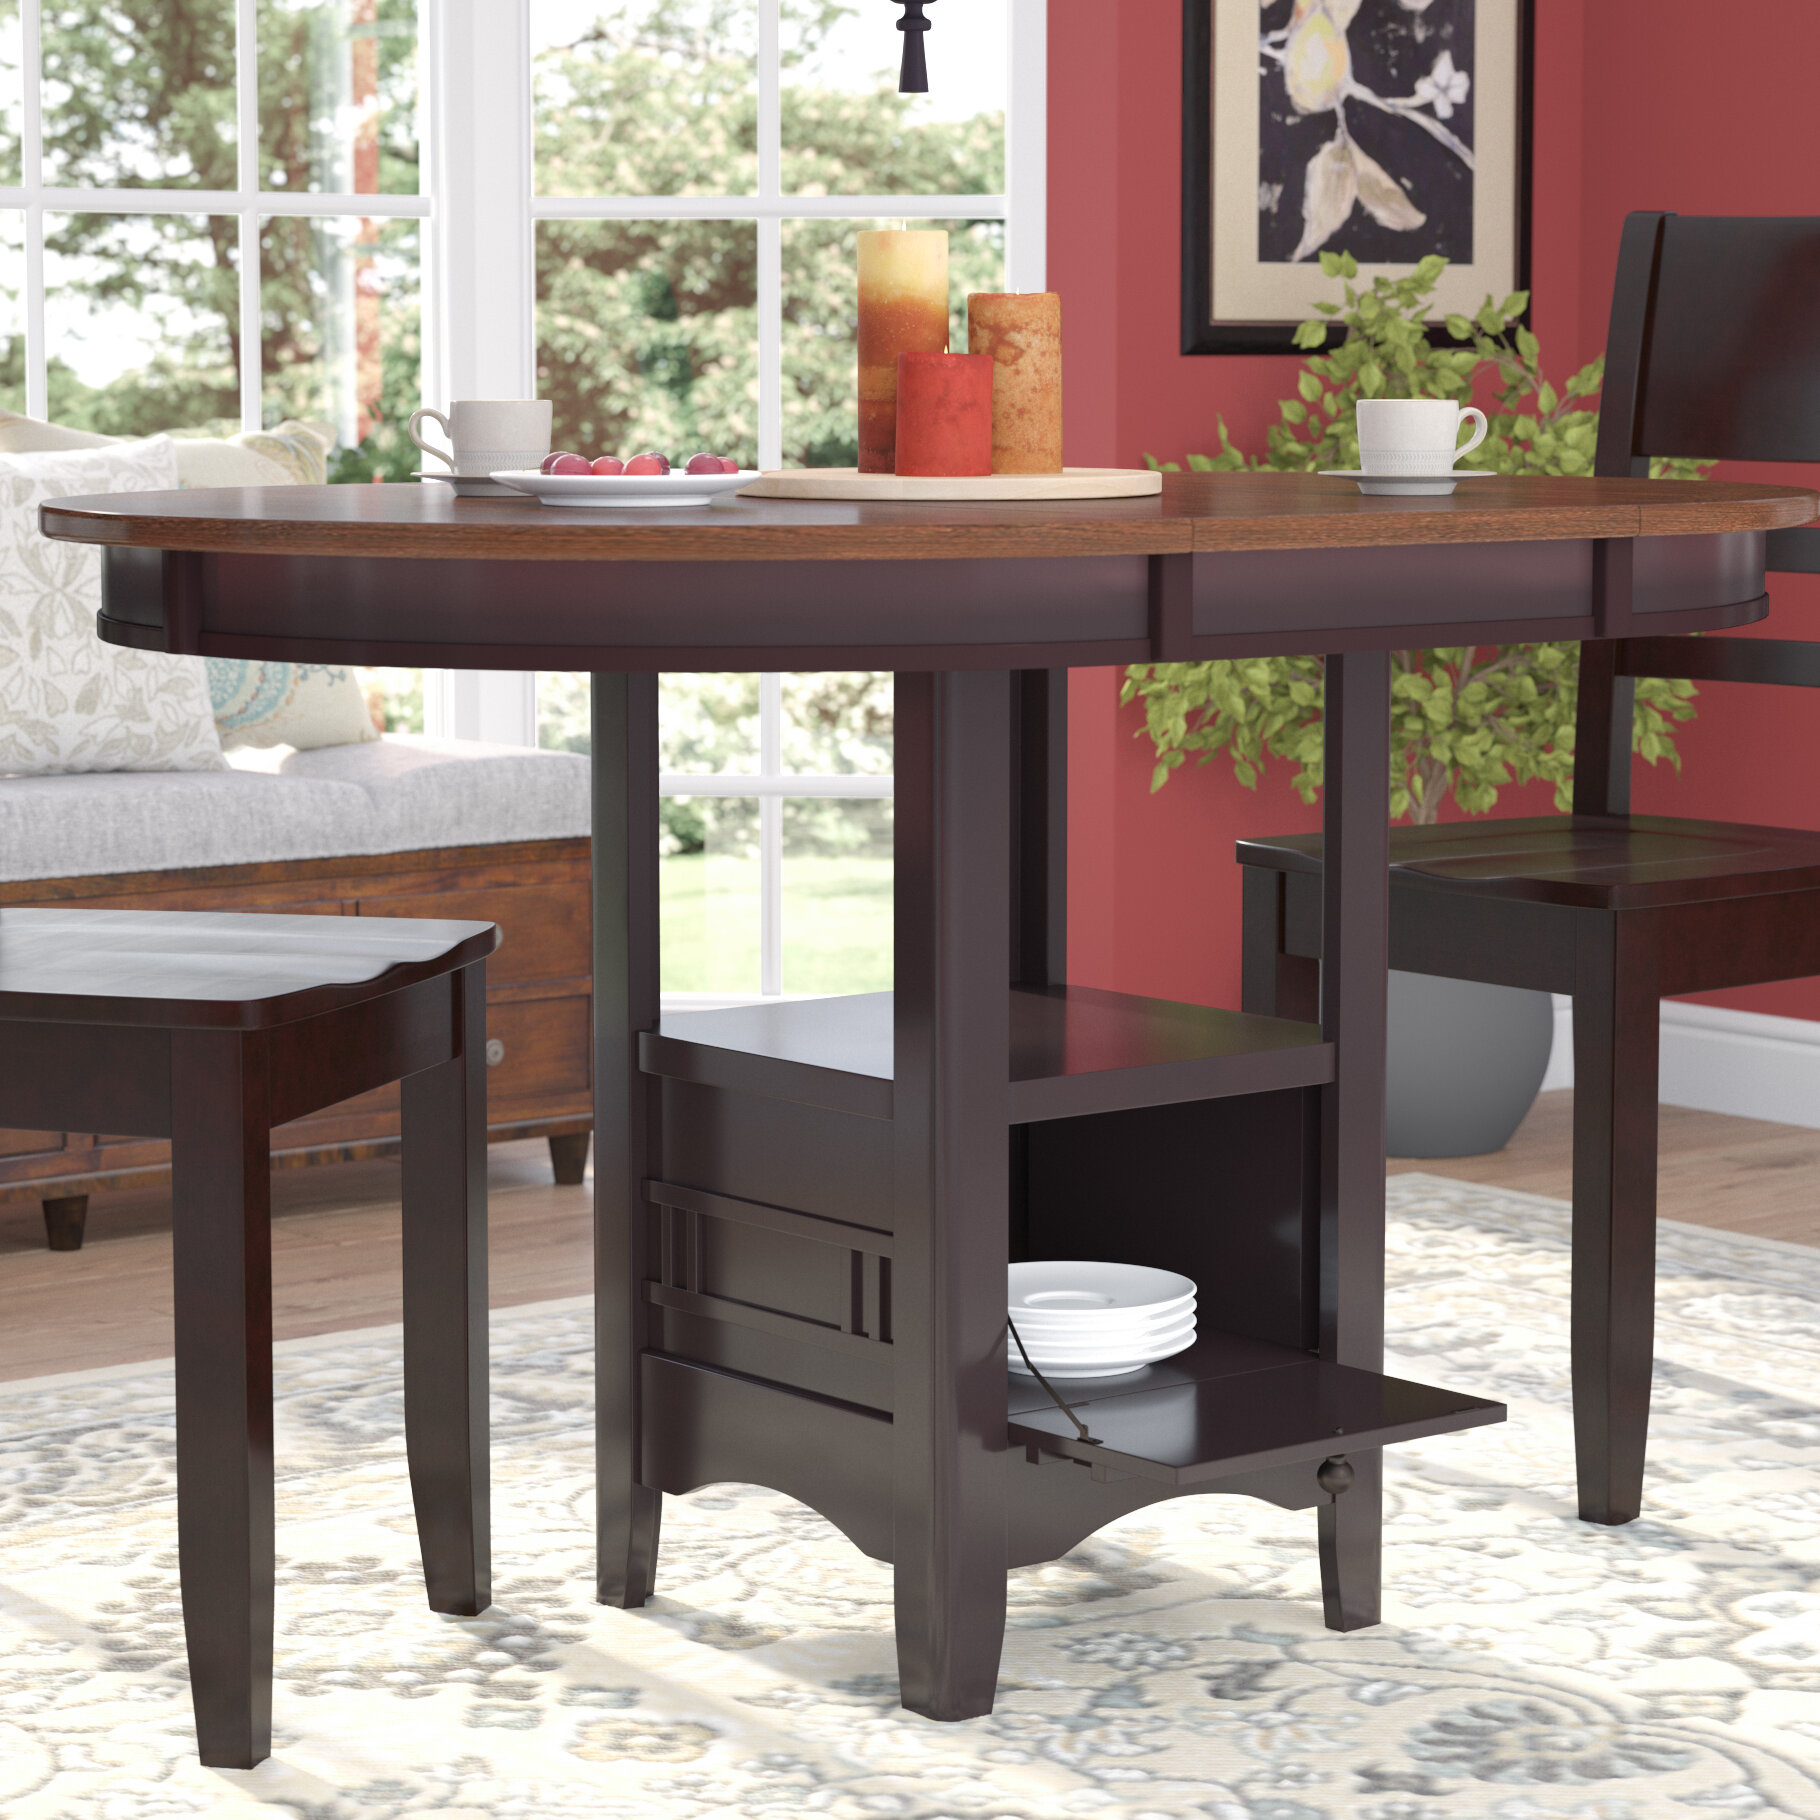 Delicieux Darby Home Co Sinkler Counter Height Drop Leaf Dining Table U0026 Reviews |  Wayfair